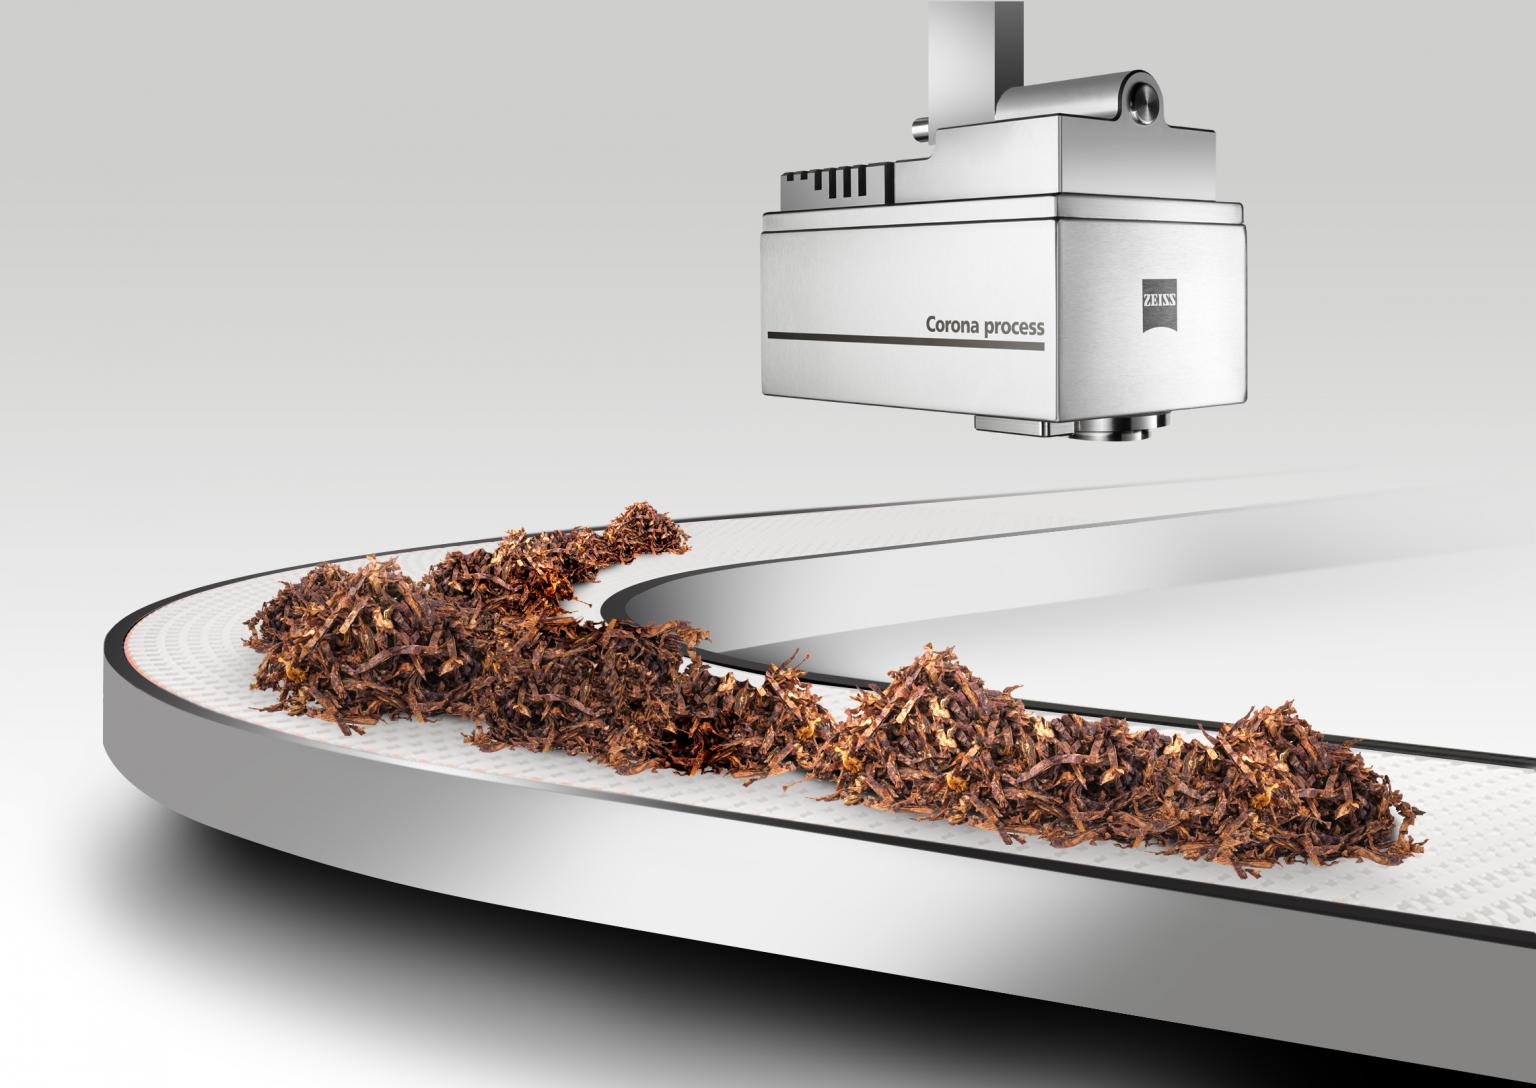 The Corona Process provides non-contact measurement of a number of important food quality parameters